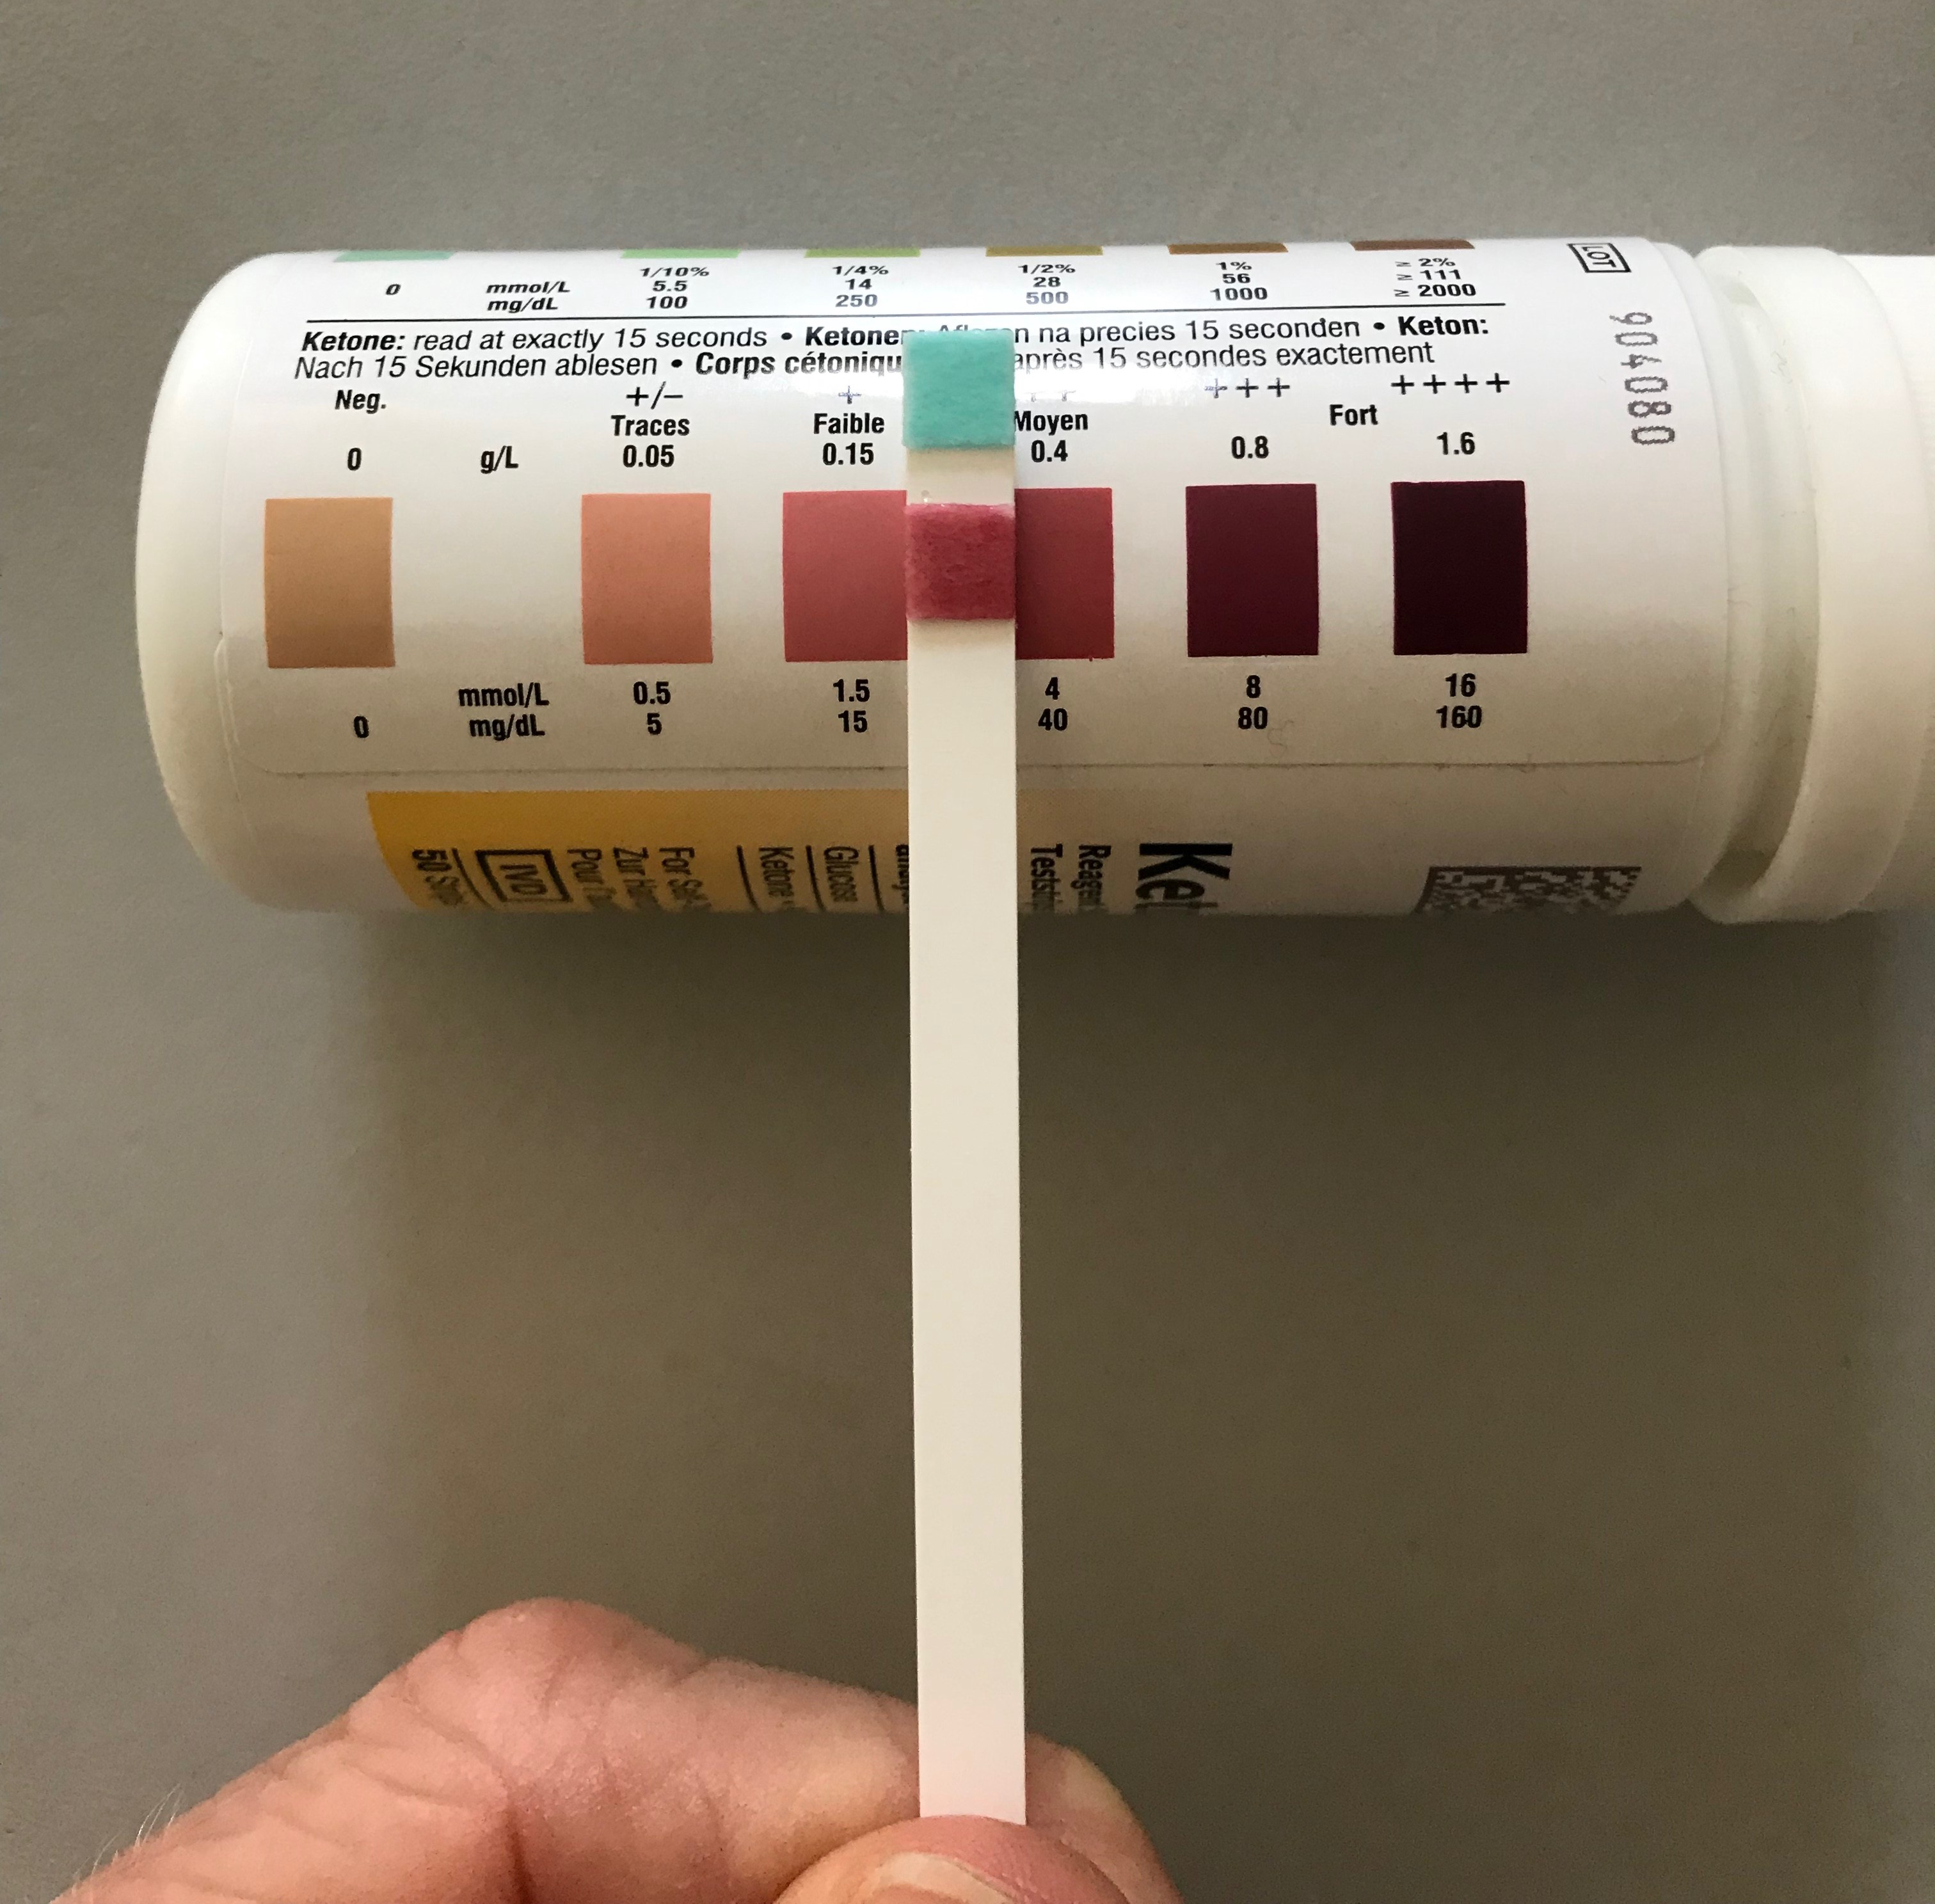 A urine strip showing blood ketone levels of between 1.5 and 4 mmol/L.